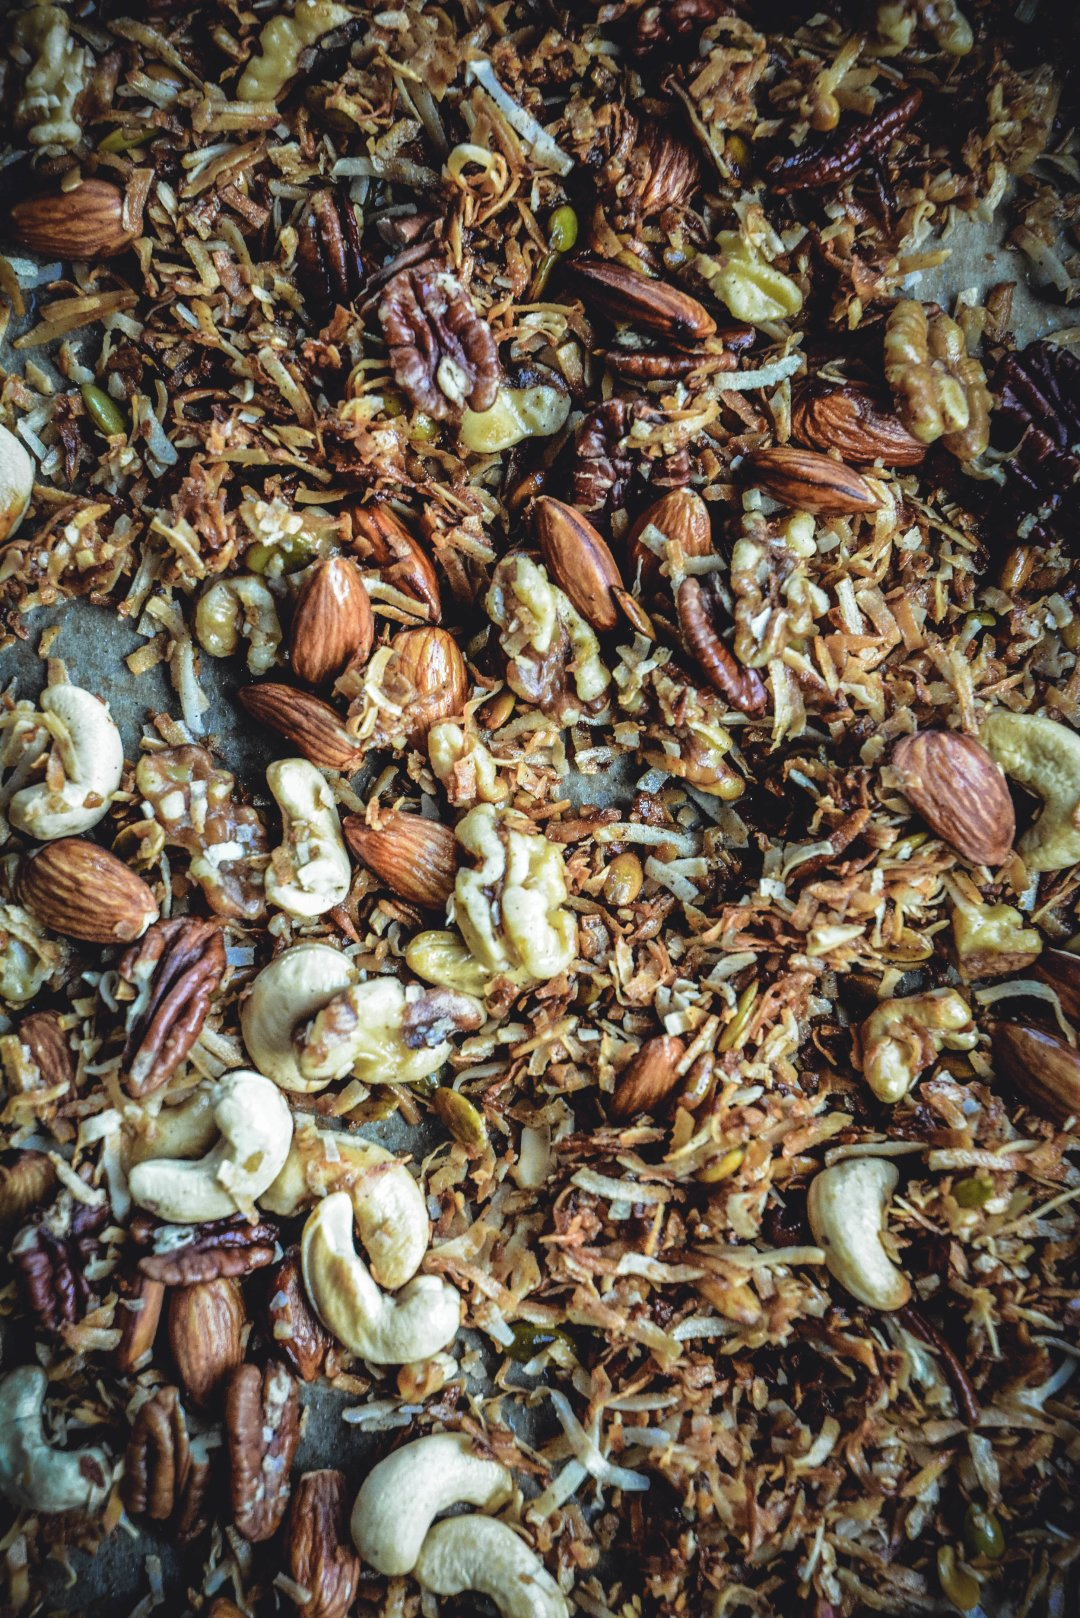 If you follow a mostly paleo diet and miss granola, try this gluten free, paleo and vegan version that's sure to satisfy your crunchy craving. #paleo #granola #calmeats #vegan #glutenfreegranola #vegetarian #paleofood #realfood #breakfast #snack #paleobreakfast #breakfast #grainfree